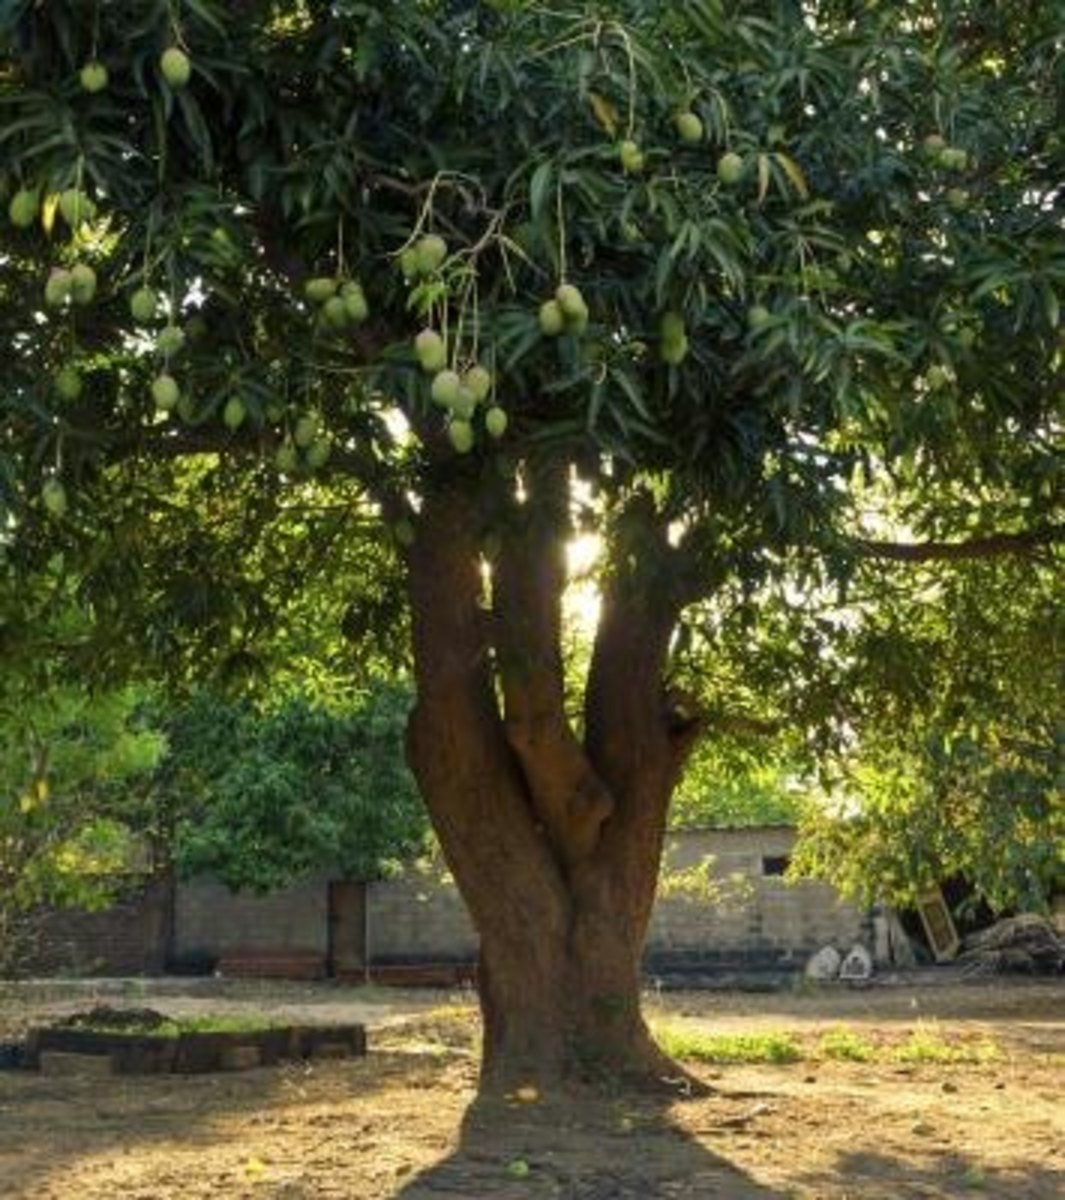 The young sapling grew to be an immense mango tree